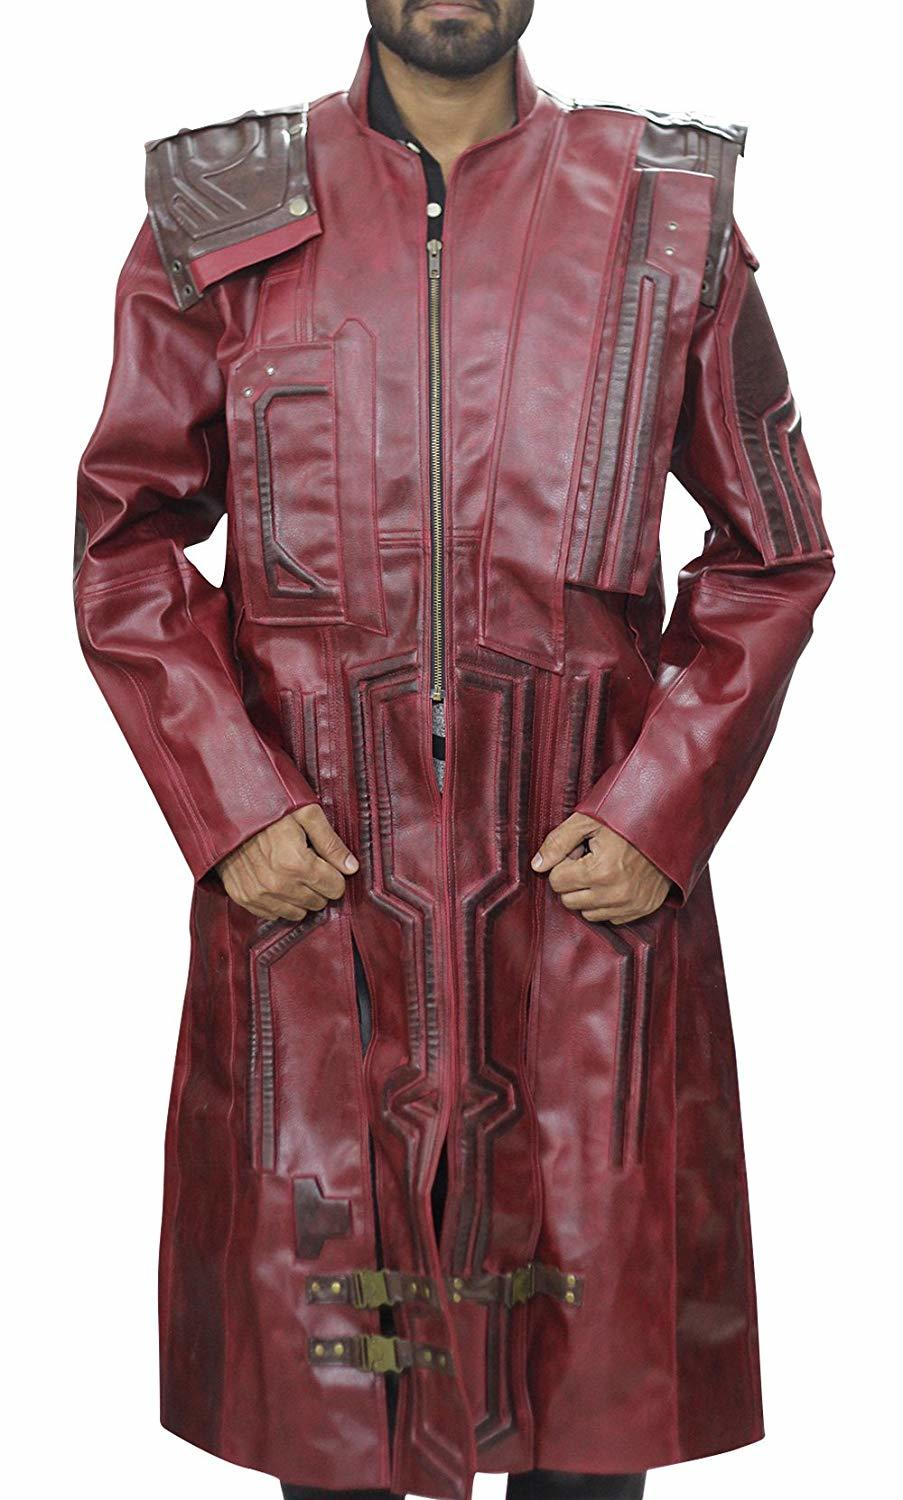 Guardians of galaxy star lord chris peter quill costume leather trench coat